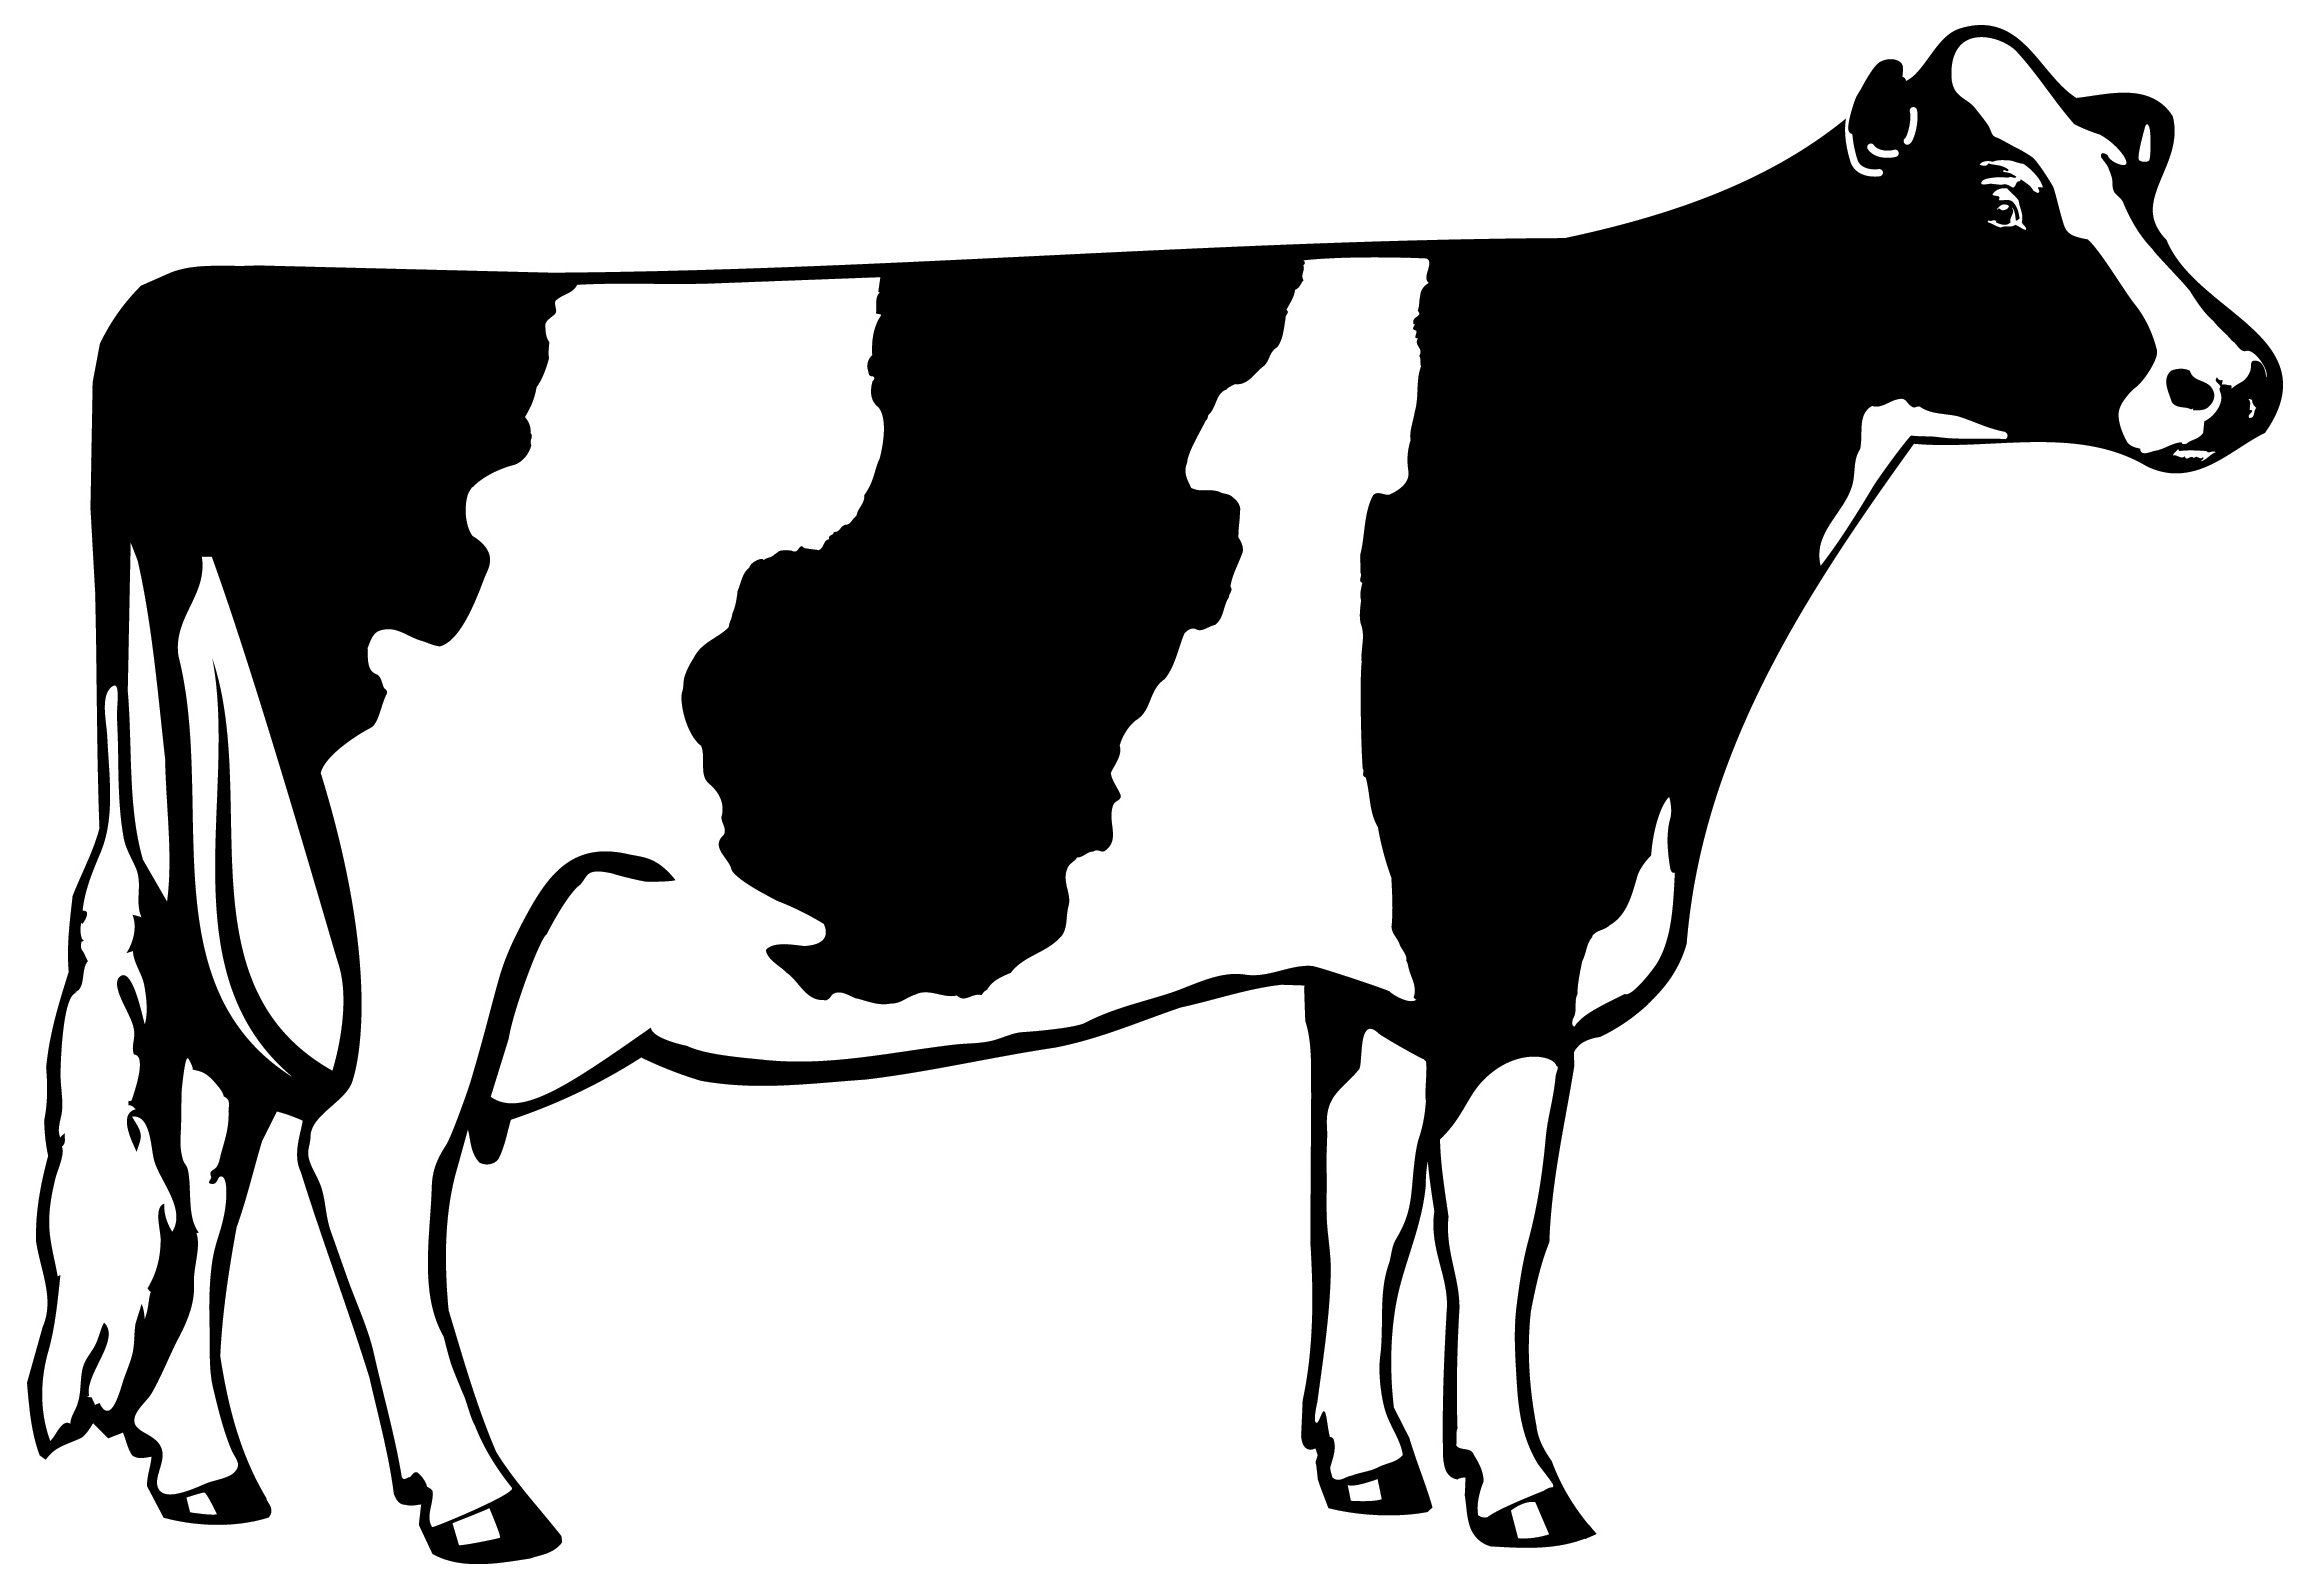 Cattle clipart black and white DownloadClipart deer Cliparts Cows clip